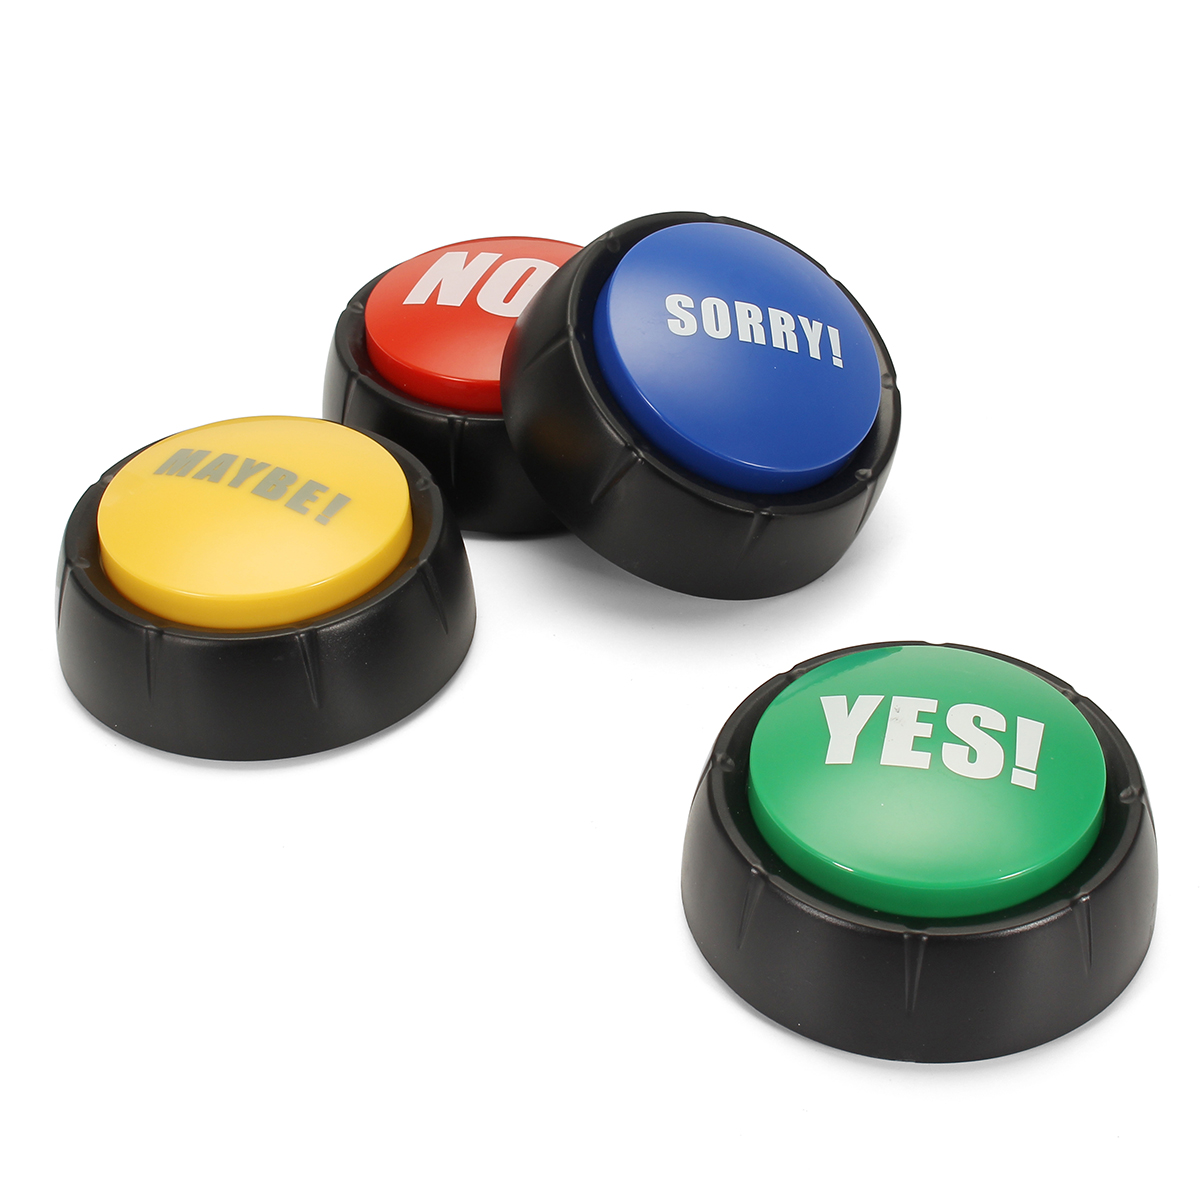 4pcs NO YES MAYBE SORRY Sound Button Event Game Party Tools Holiday Supplies